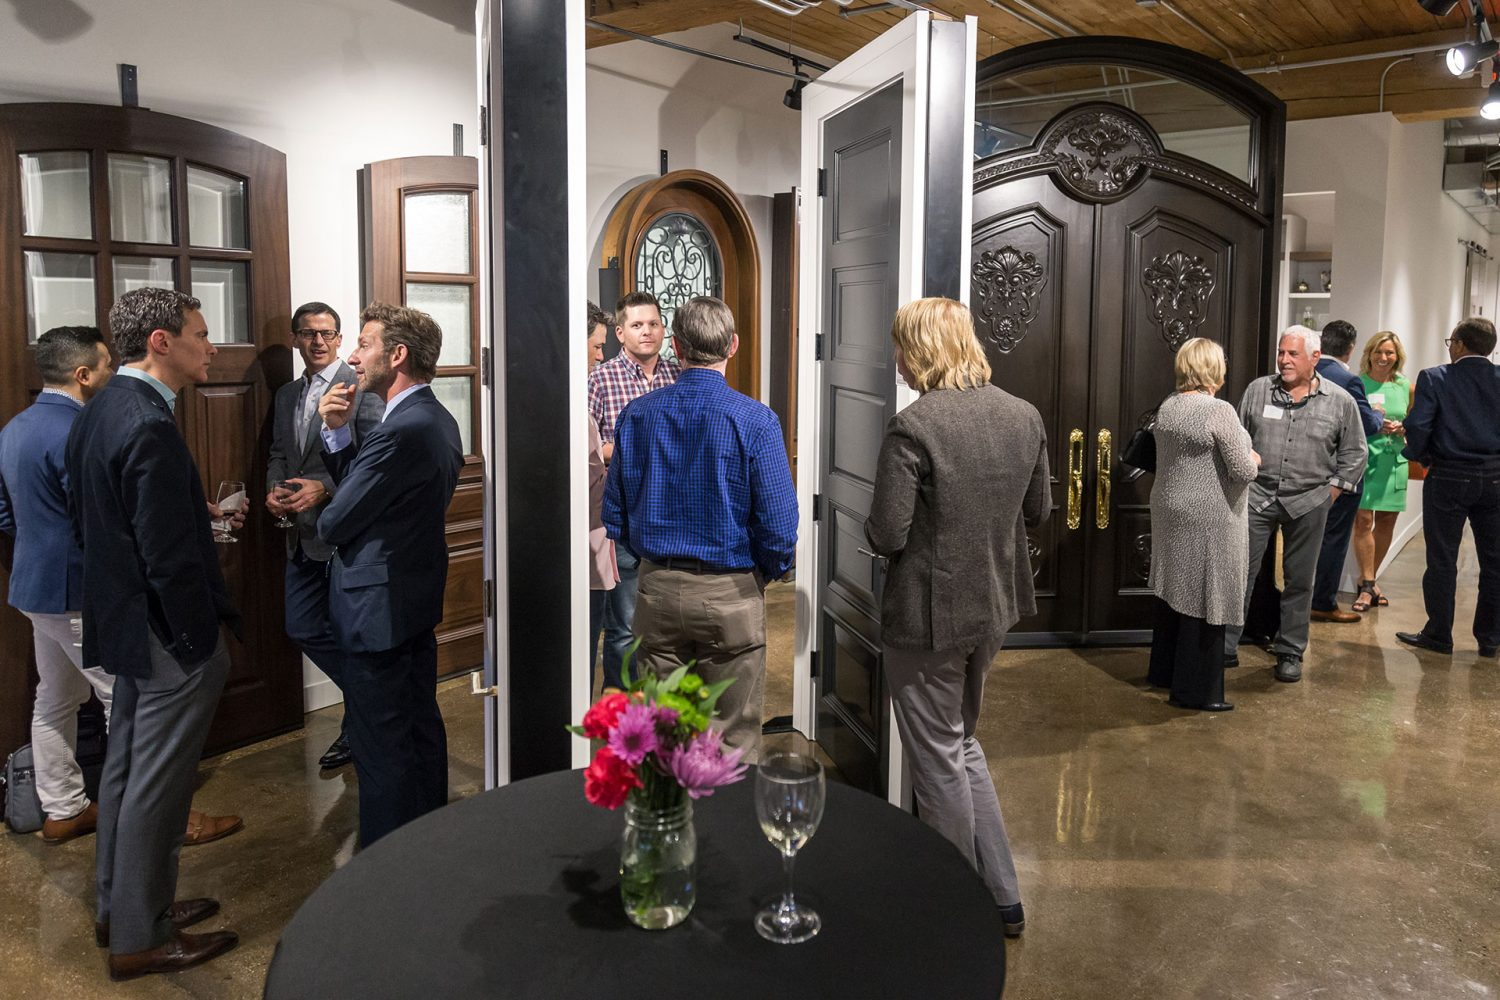 Glenview haus chicago showroom custom doors wine cellars driven by design empowering the next transformation of interior design with president and ceo of trustile doors scott schmid may 18 2017 eventelaan Images